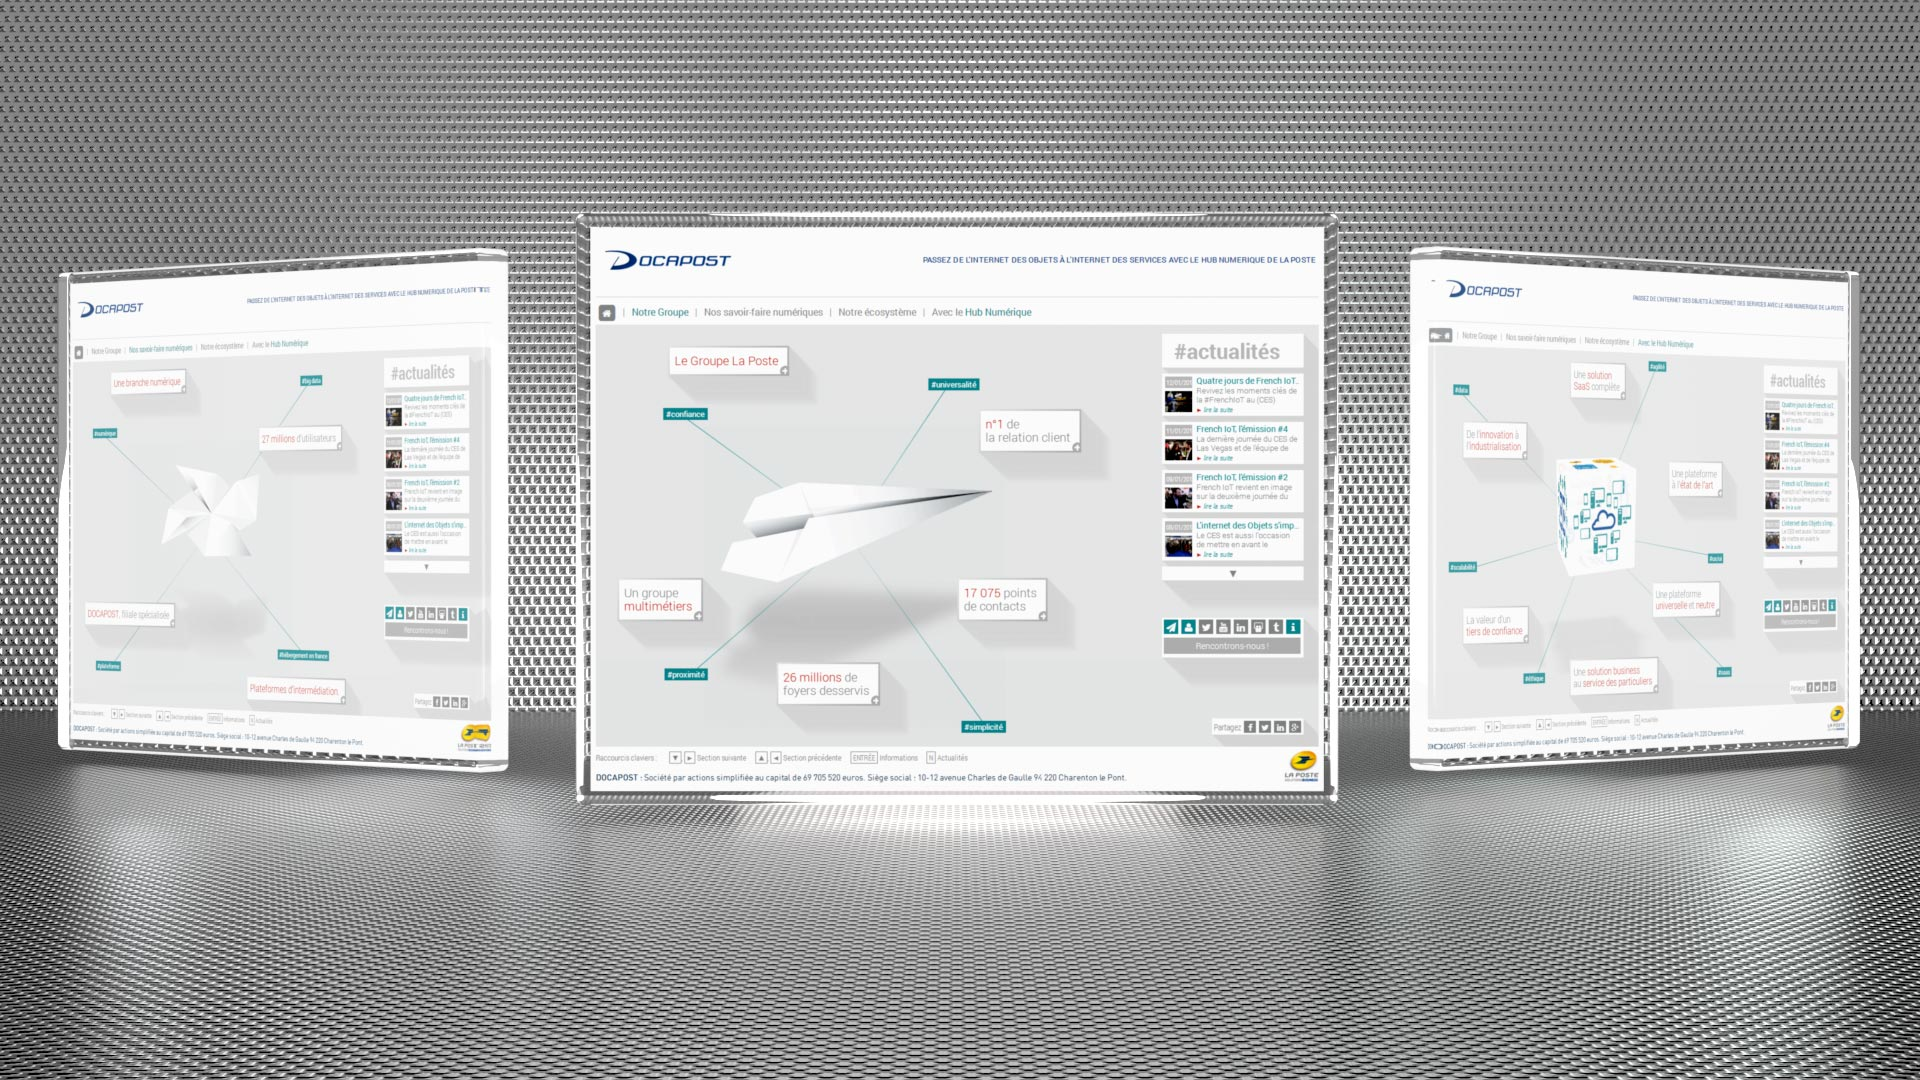 Design and Realisation of a micro b2b website presenting Docapost's Solutions for Managing IoT's datas: le Hub Numerique. Docapost is a Subsidiary Company of french Groupe La Poste. Hub Numérique de la Poste [Archive] (french content) Le Hub Numerique light iPad version [Archive] (english content)